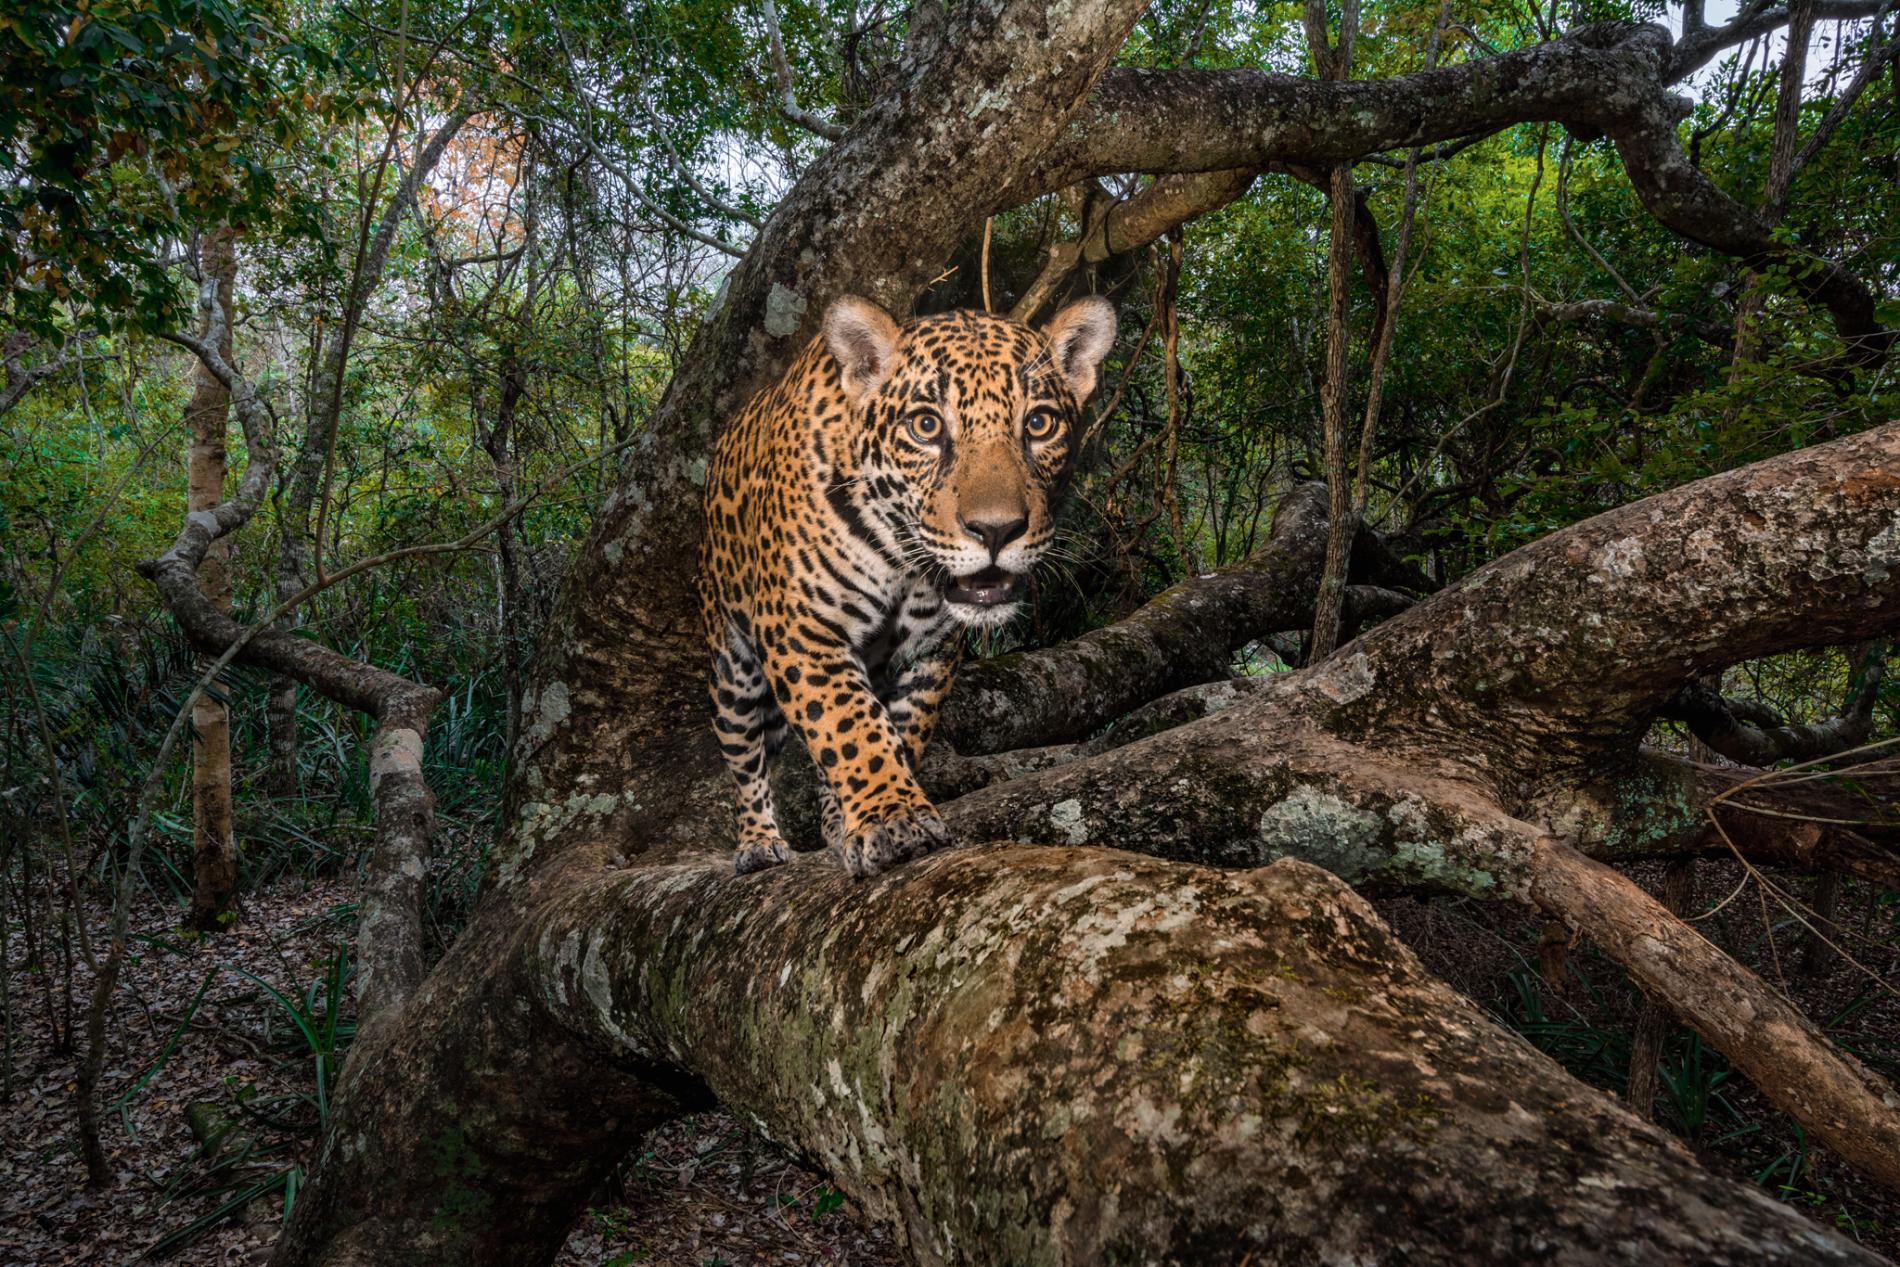 57 Pictures of the year - Natgeo - Tinhte.vn 27.jpg